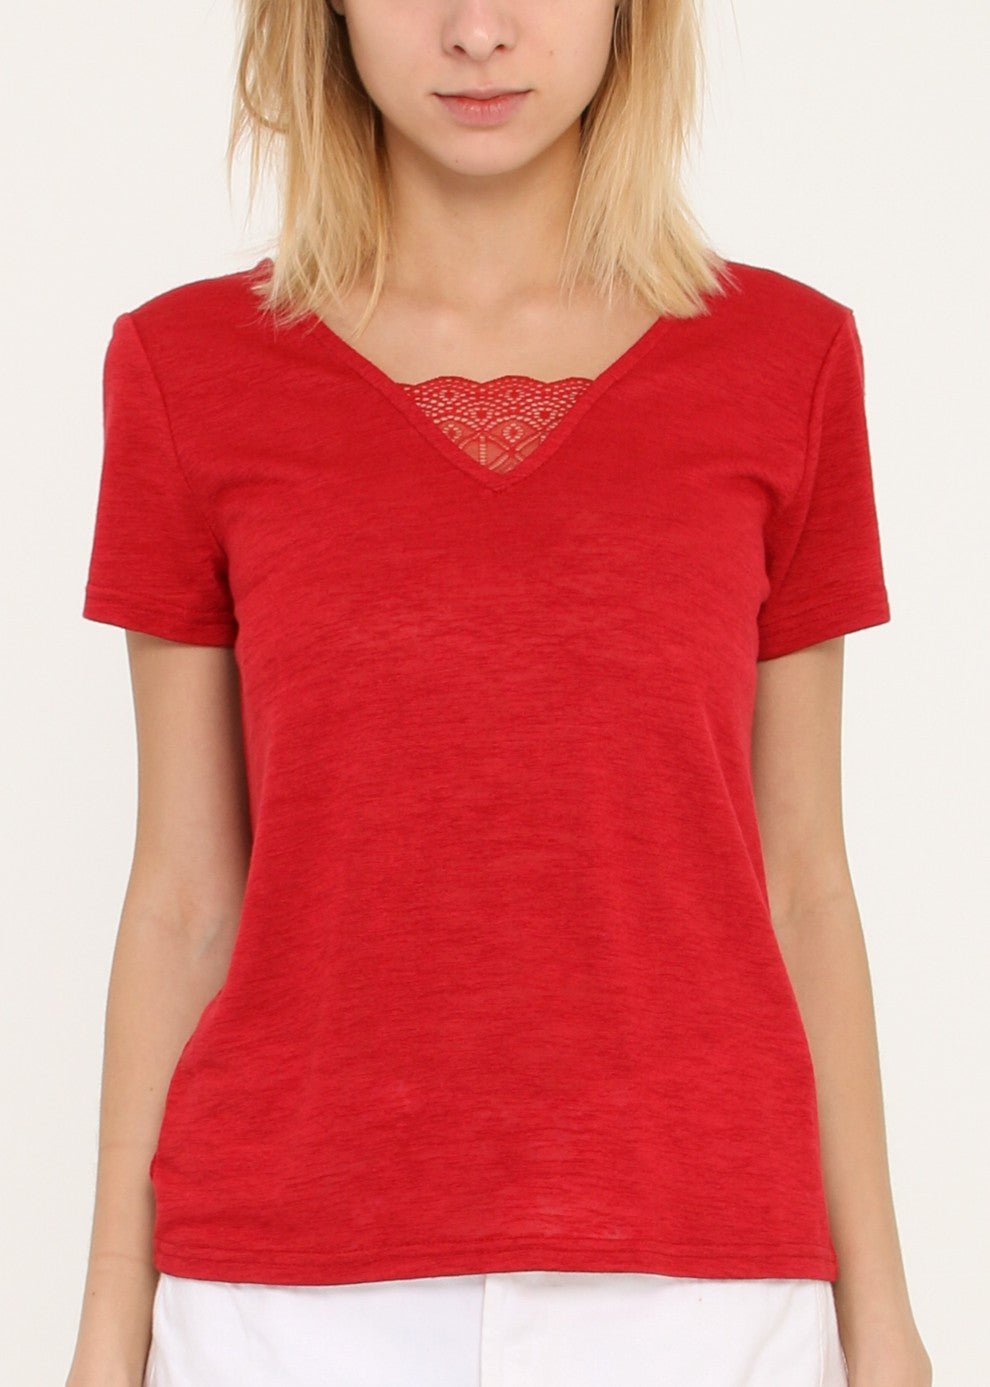 KOVICH - V Lace Top - Red